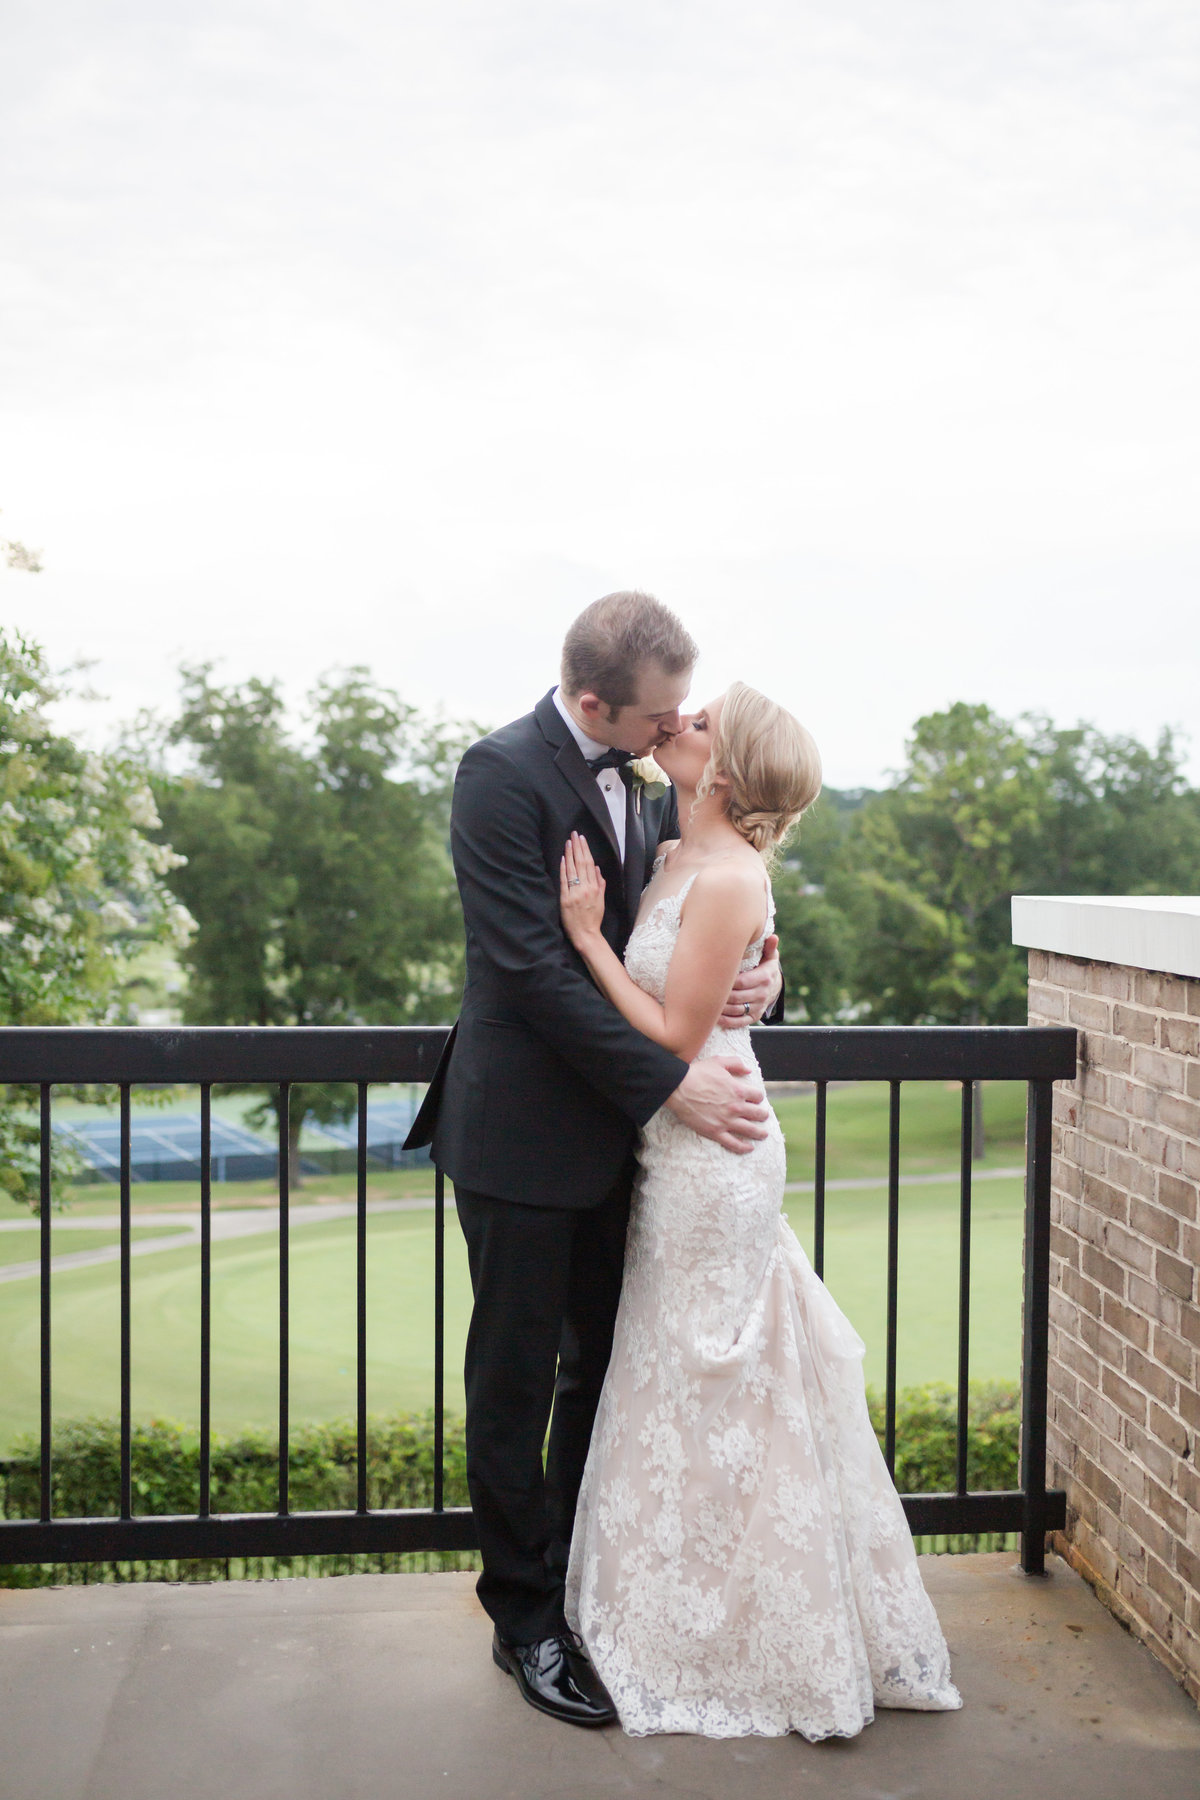 DGP_Gadsden Country Club Wedding_Holland-Horst-144